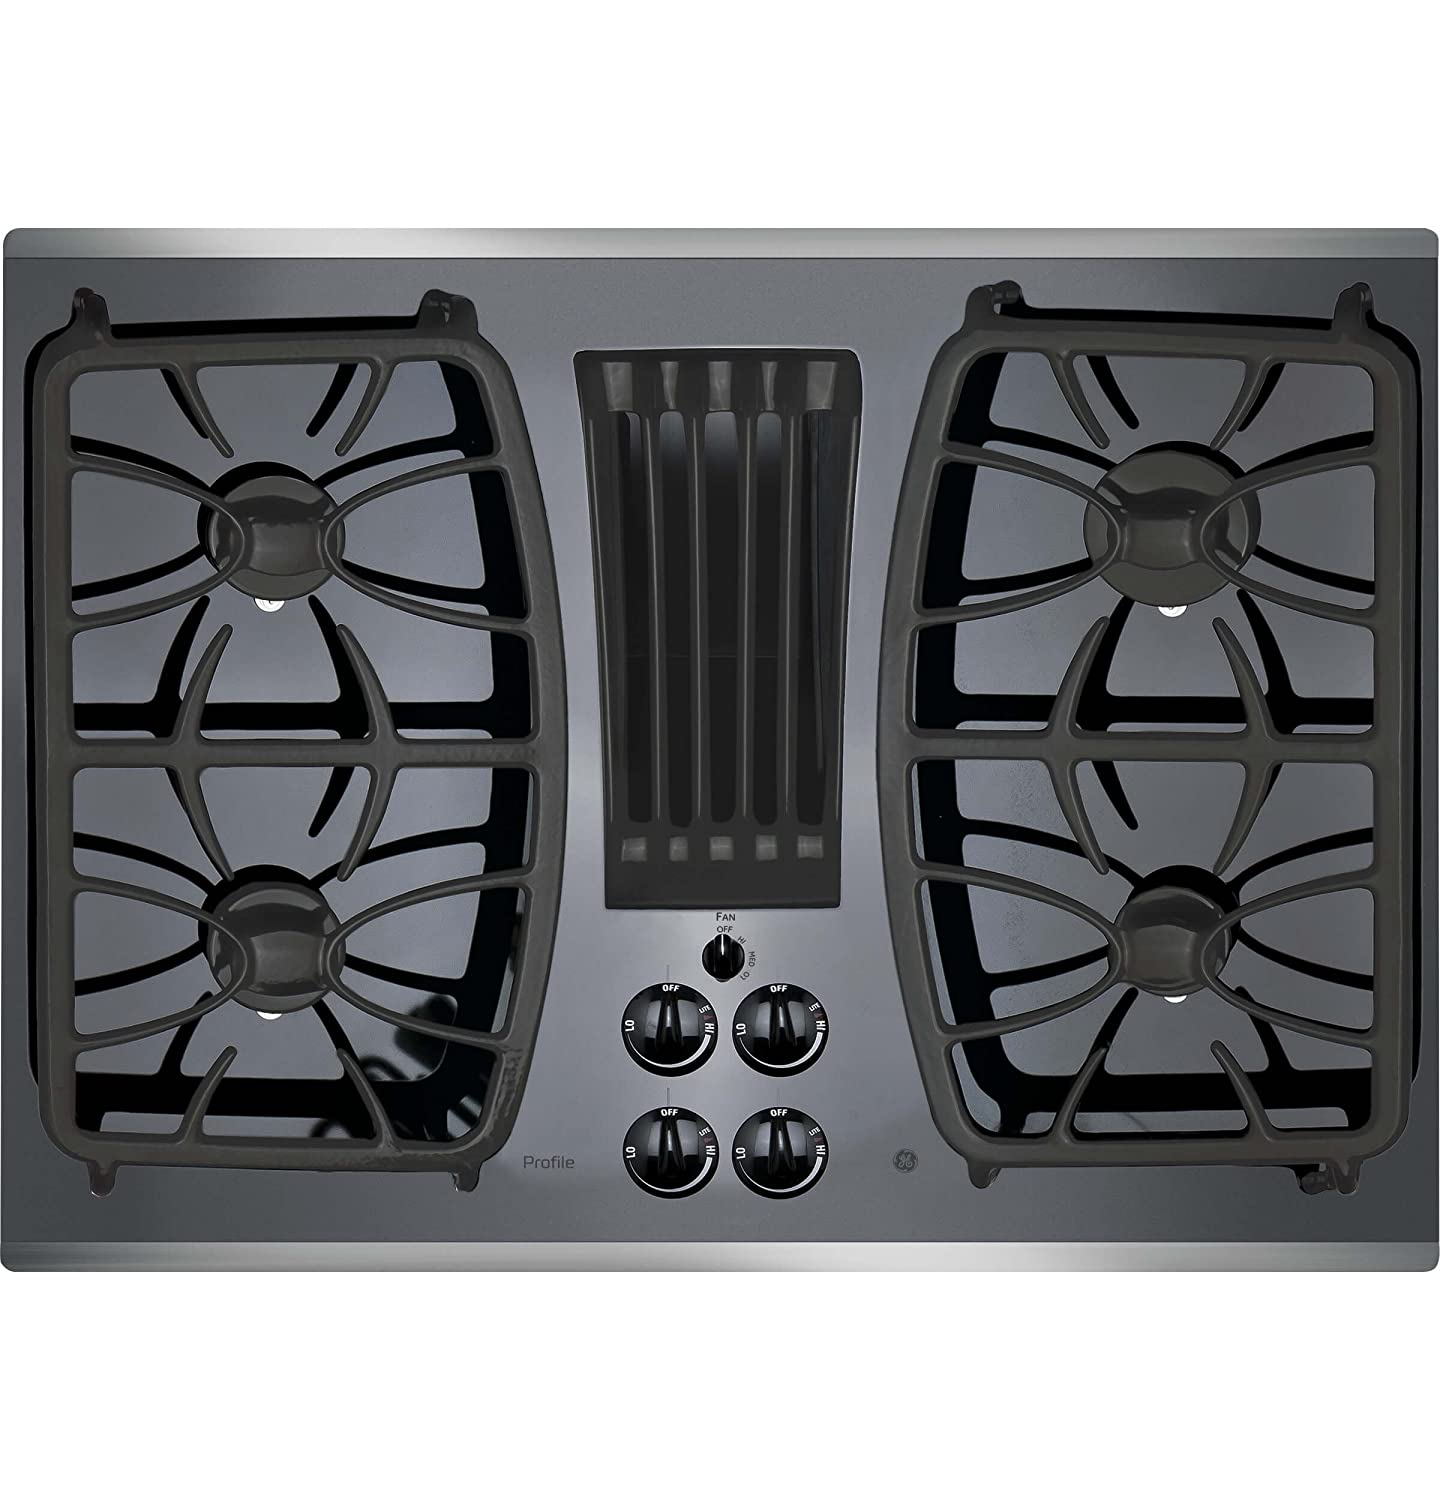 GE Profile Gas Downdraft Cooktop PGP9830SJSS Black Glass w/Stainless Steel Trim